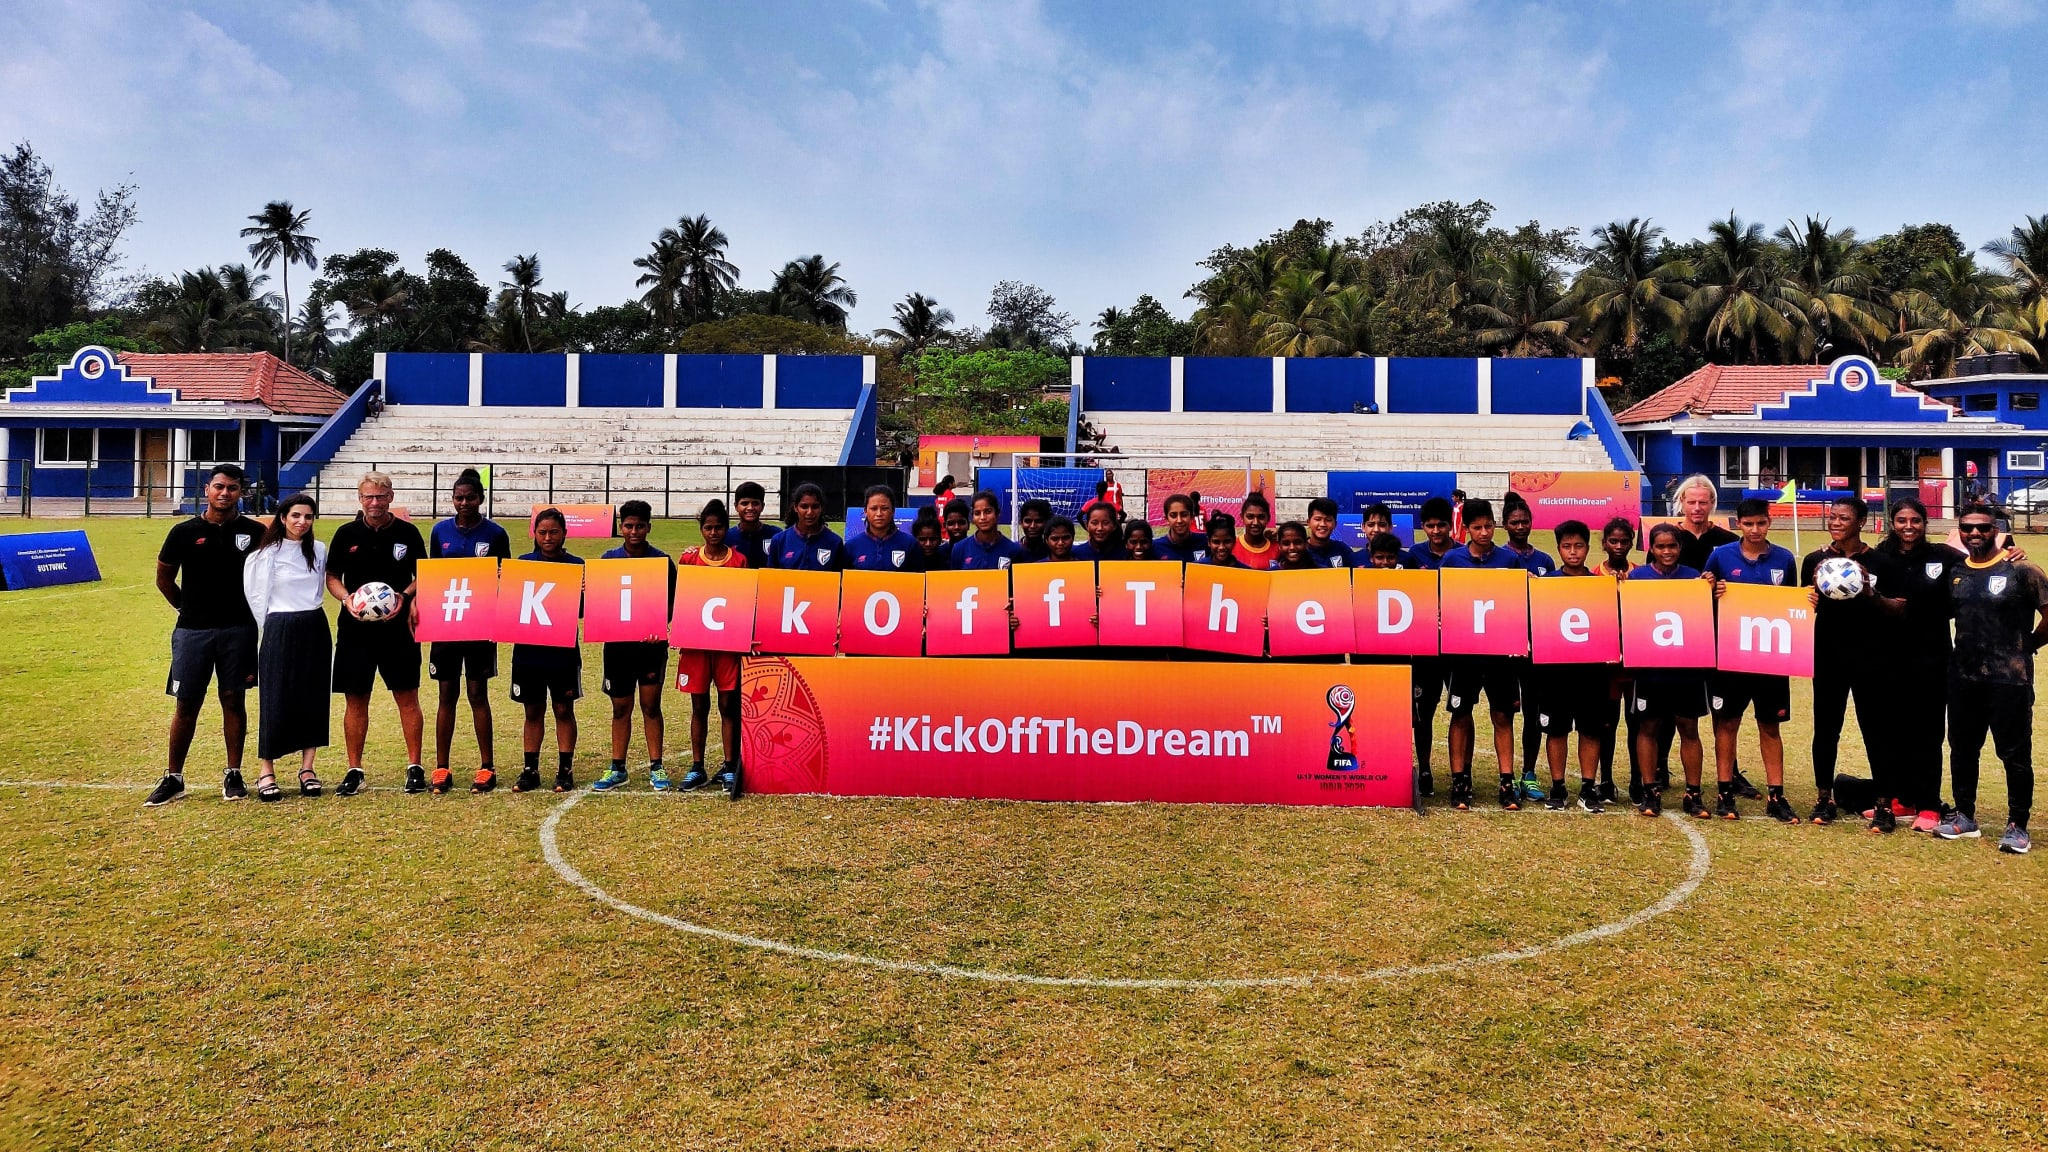 India U-17 women pose with the tournament slogan, 'Kick Off The Dream', ahead of the FIFA U-17 Women's World Cup India 2020™